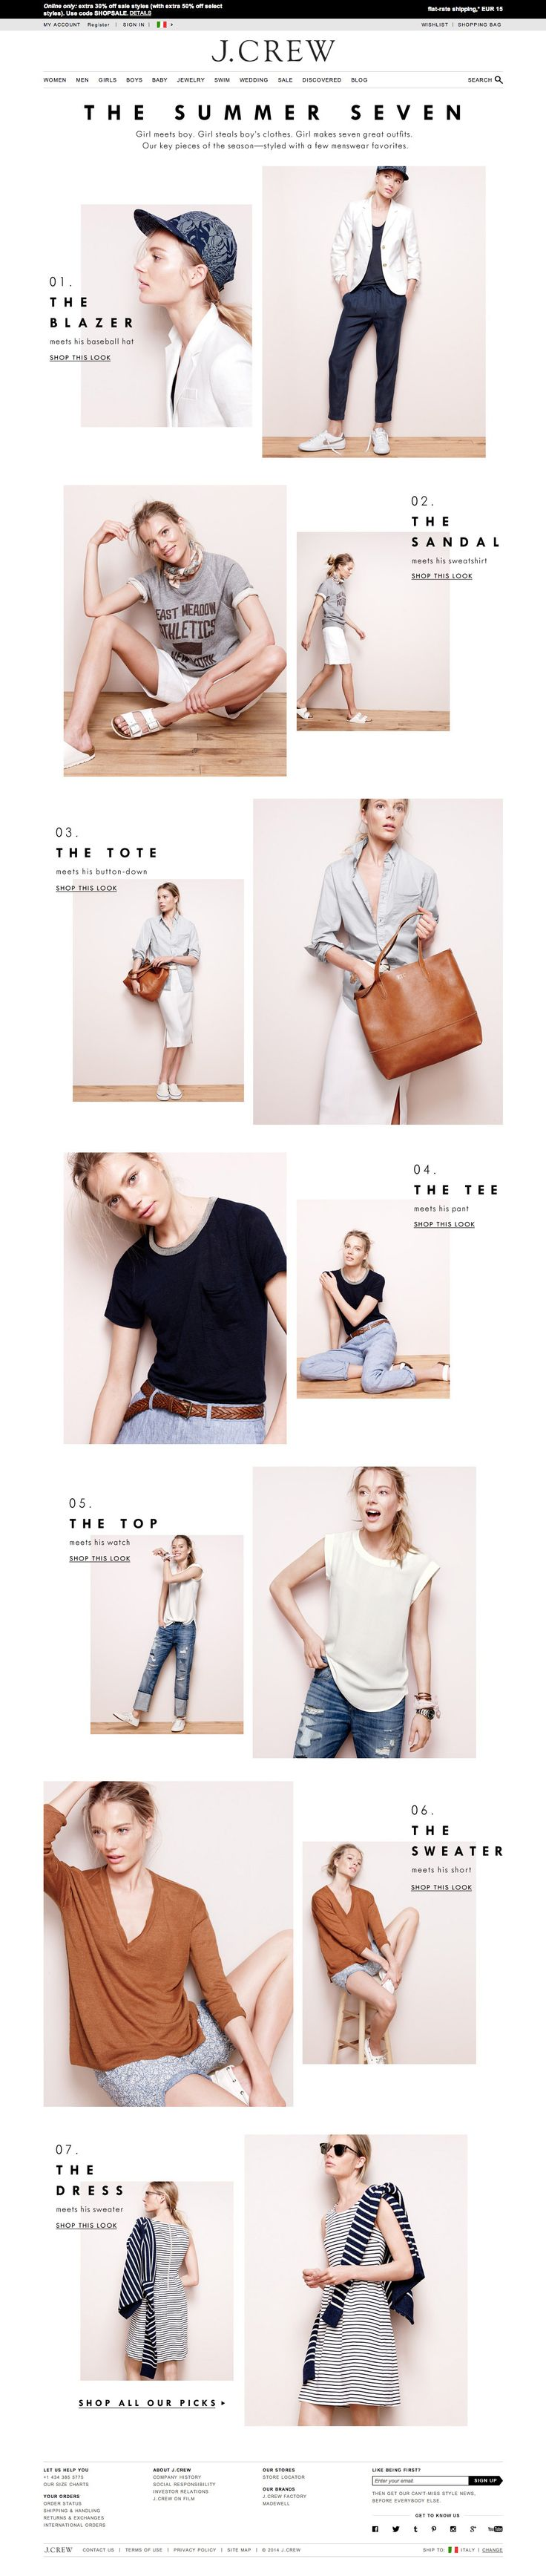 #landingpage J.Crew 04.2014 The Summer Seven